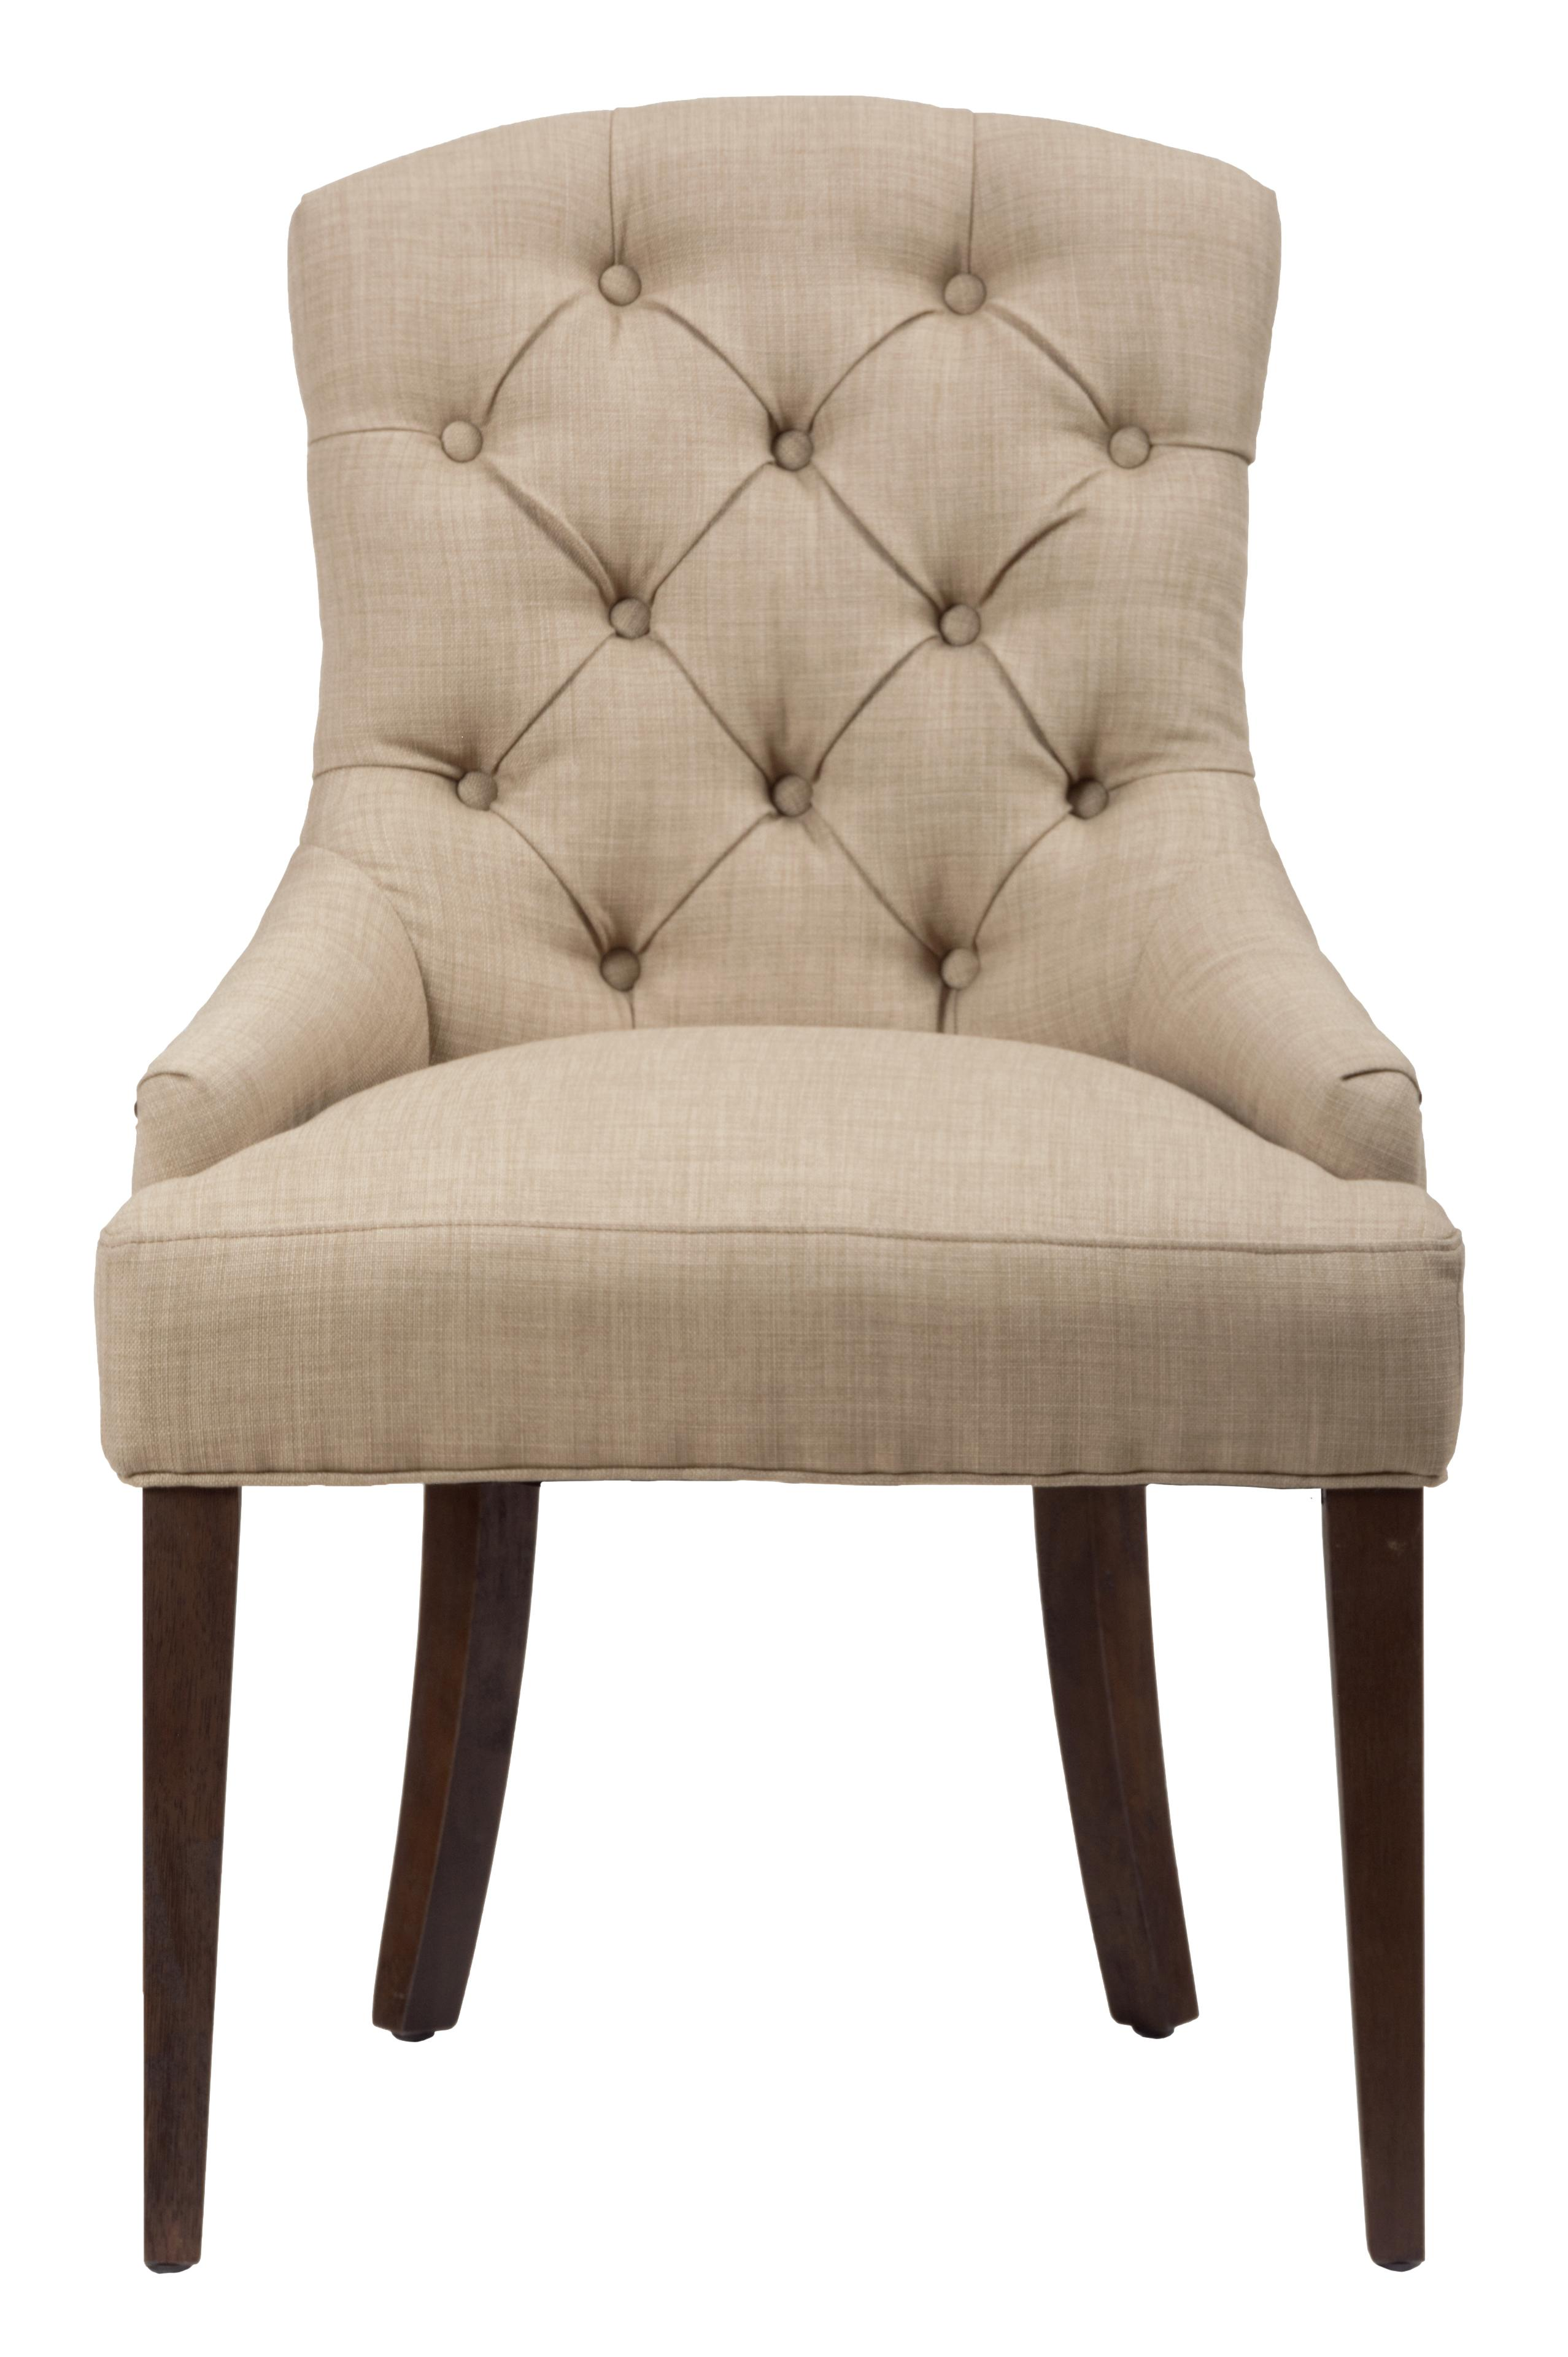 Long beach upholstered side chair with tufted back morris home dining side chairs Morris home furniture hours